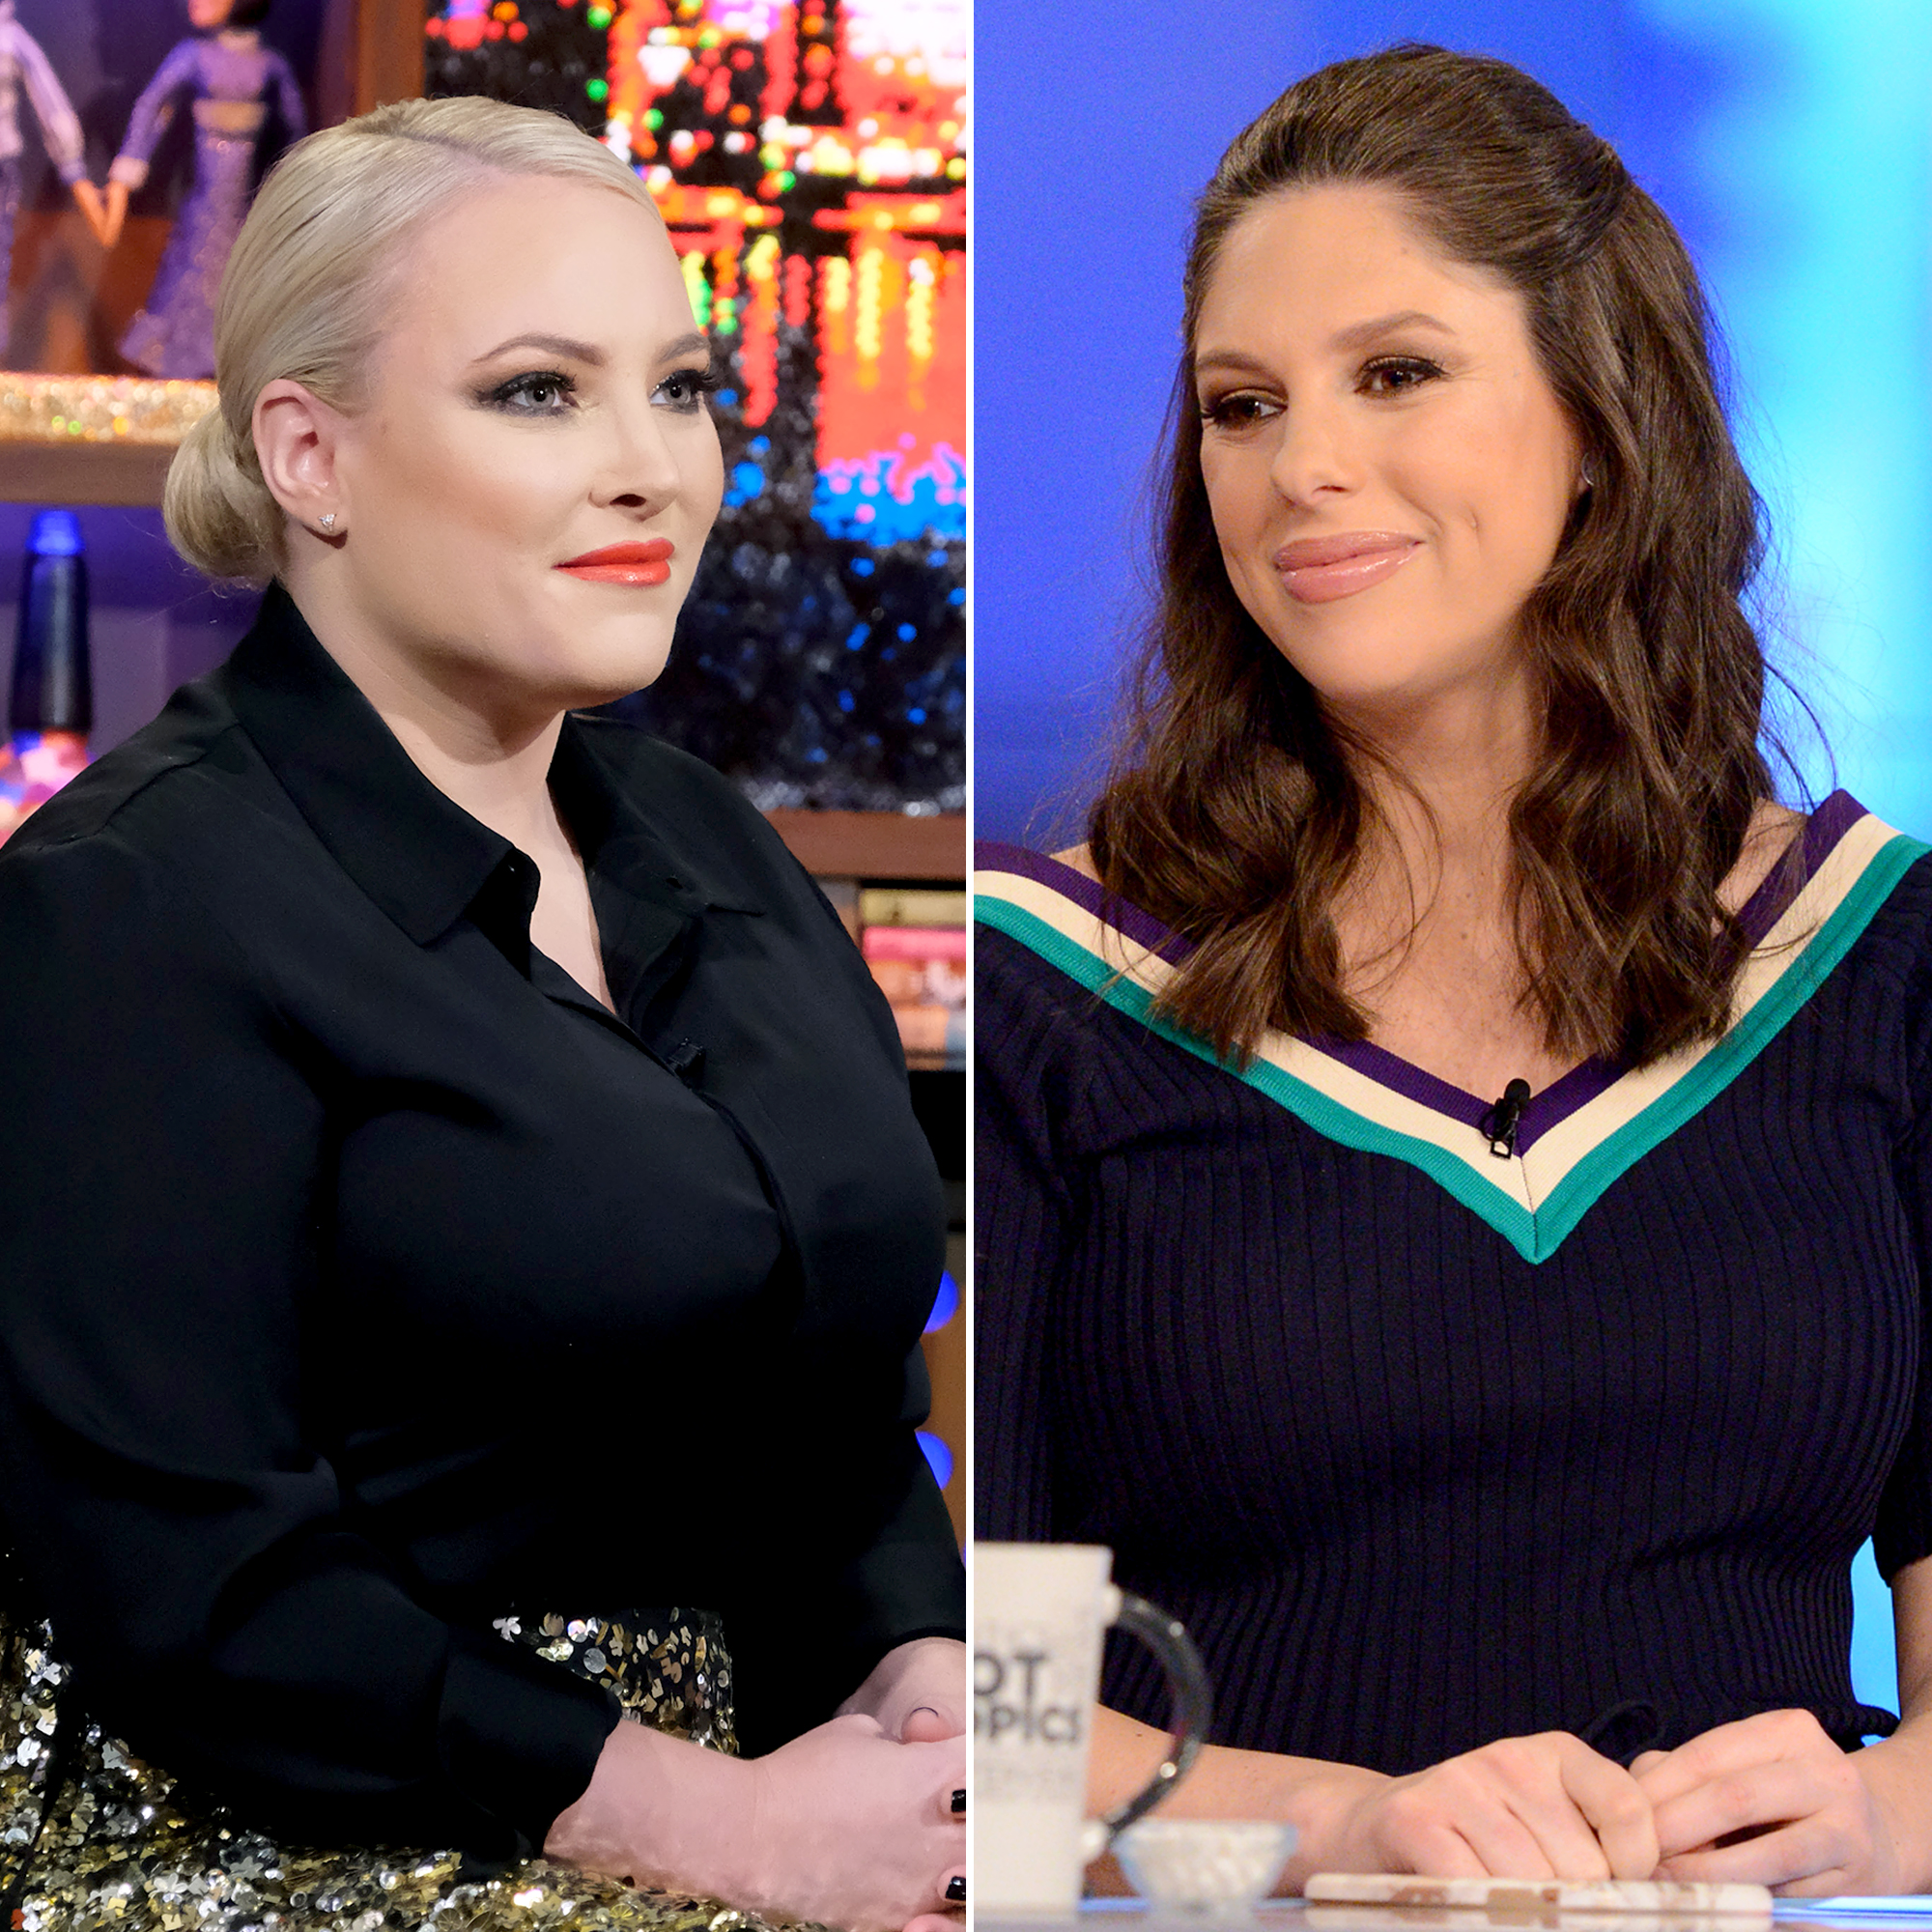 Meghan-McCain-Confirms-She-Had-a-'Small-Fight'-With-Former-'View'-Cohost-Abby-Huntsman